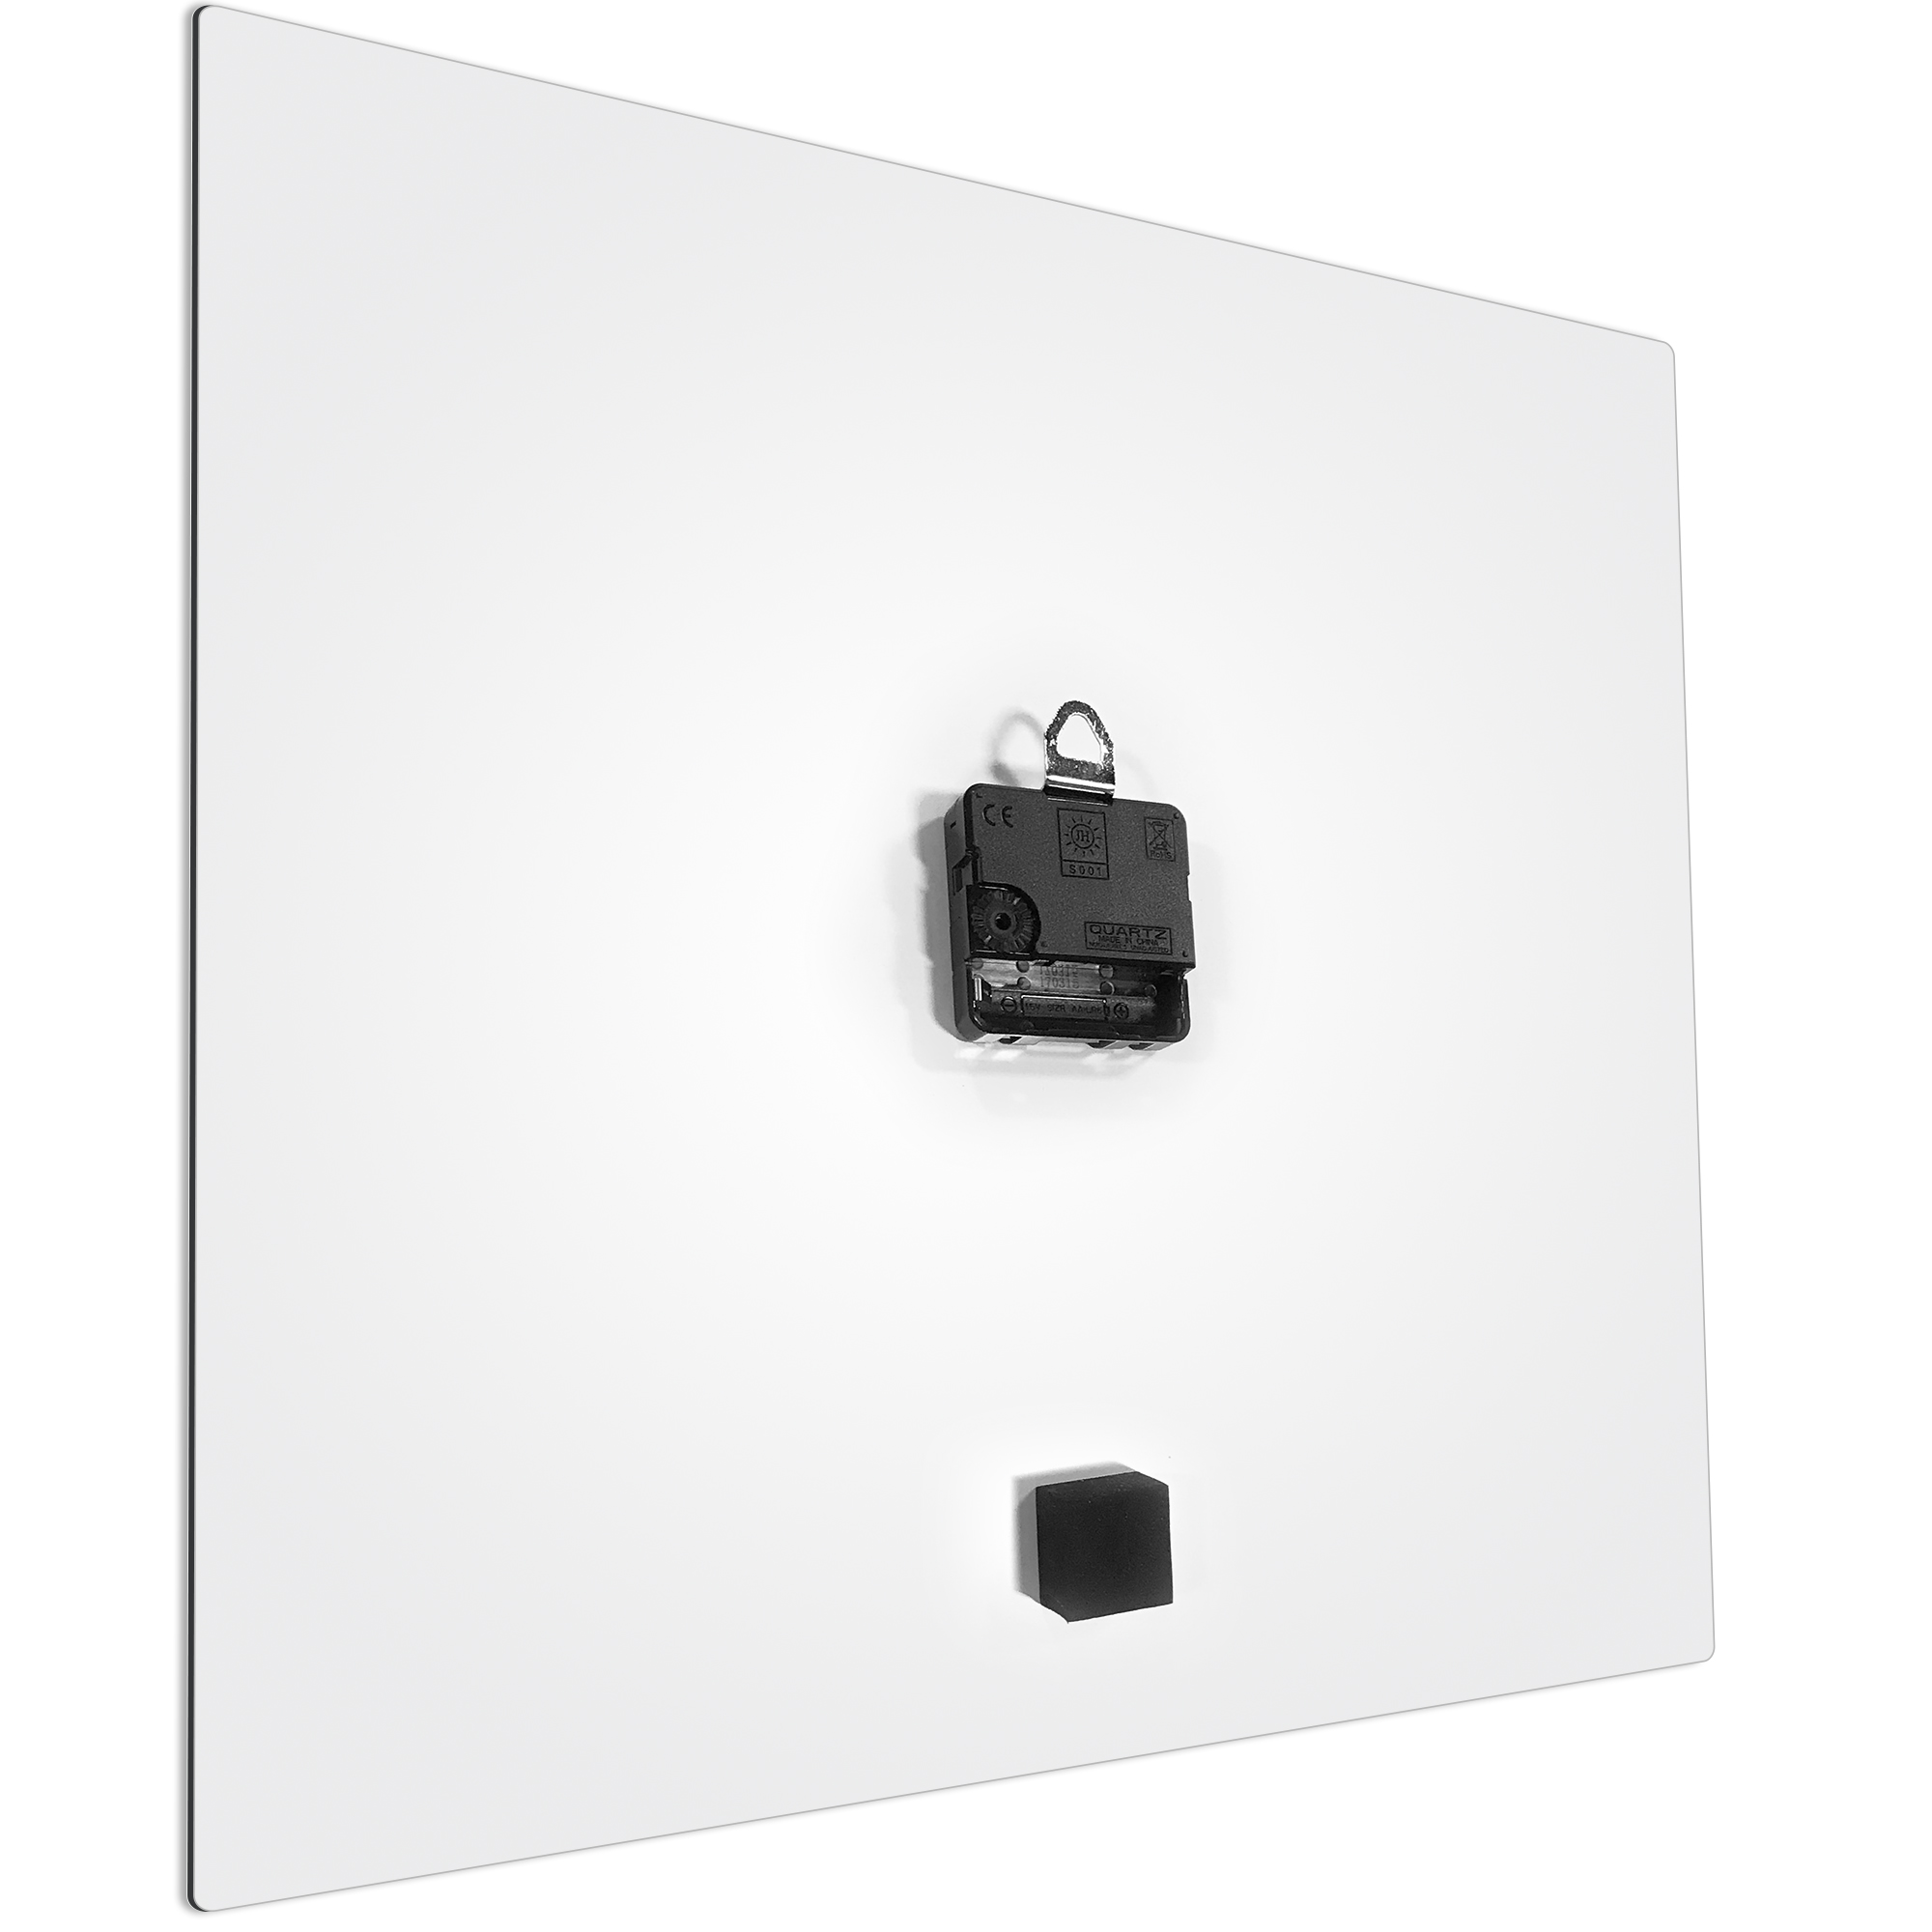 Redout White Square Clock by Adam Schwoeppe Contemporary Clock on Aluminum Polymetal - Alternate View 3